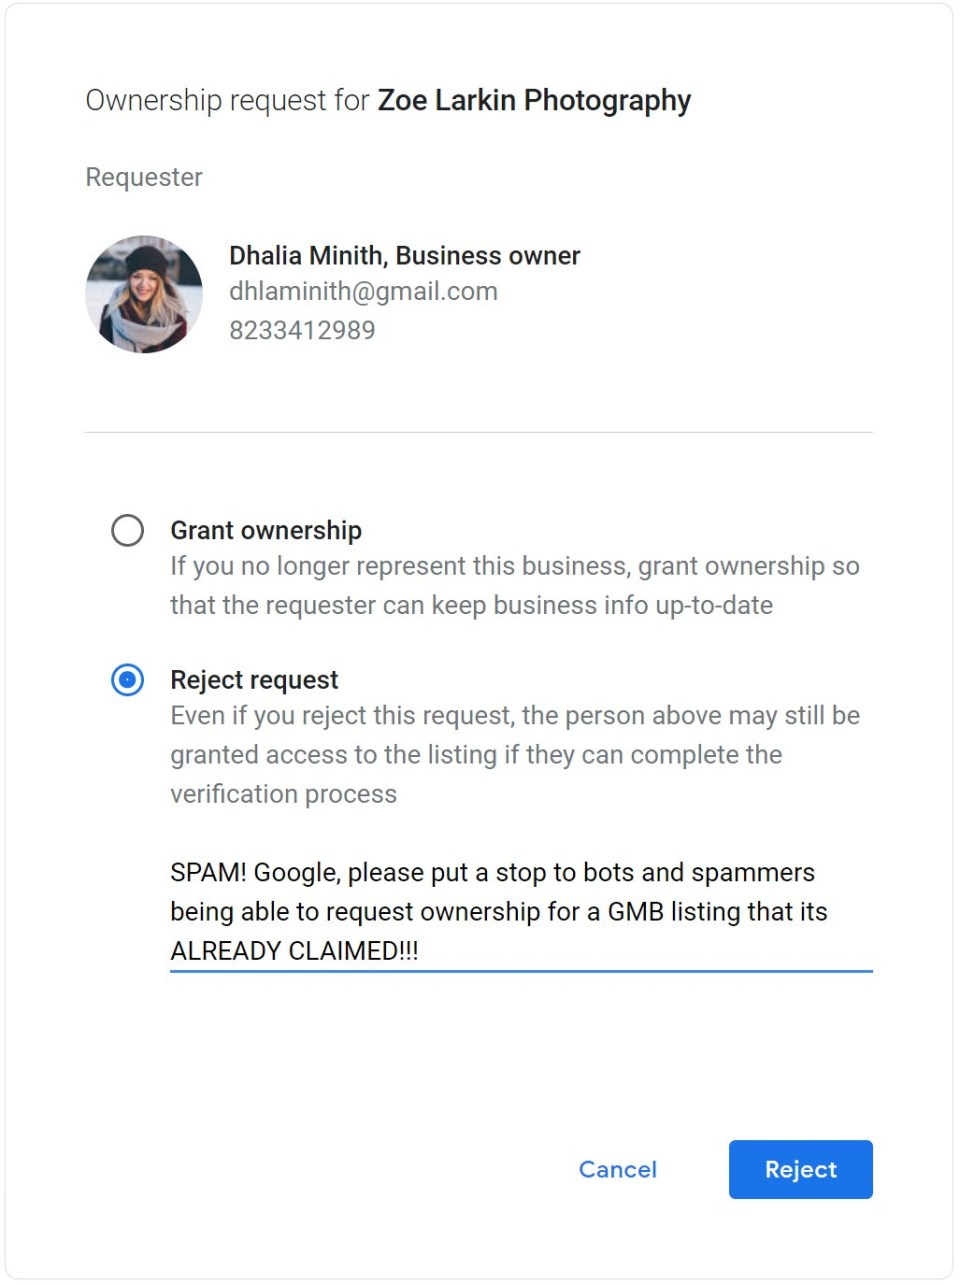 screenshot showing ownership request from a scam artist attempting to gain access to a Google My Business listing